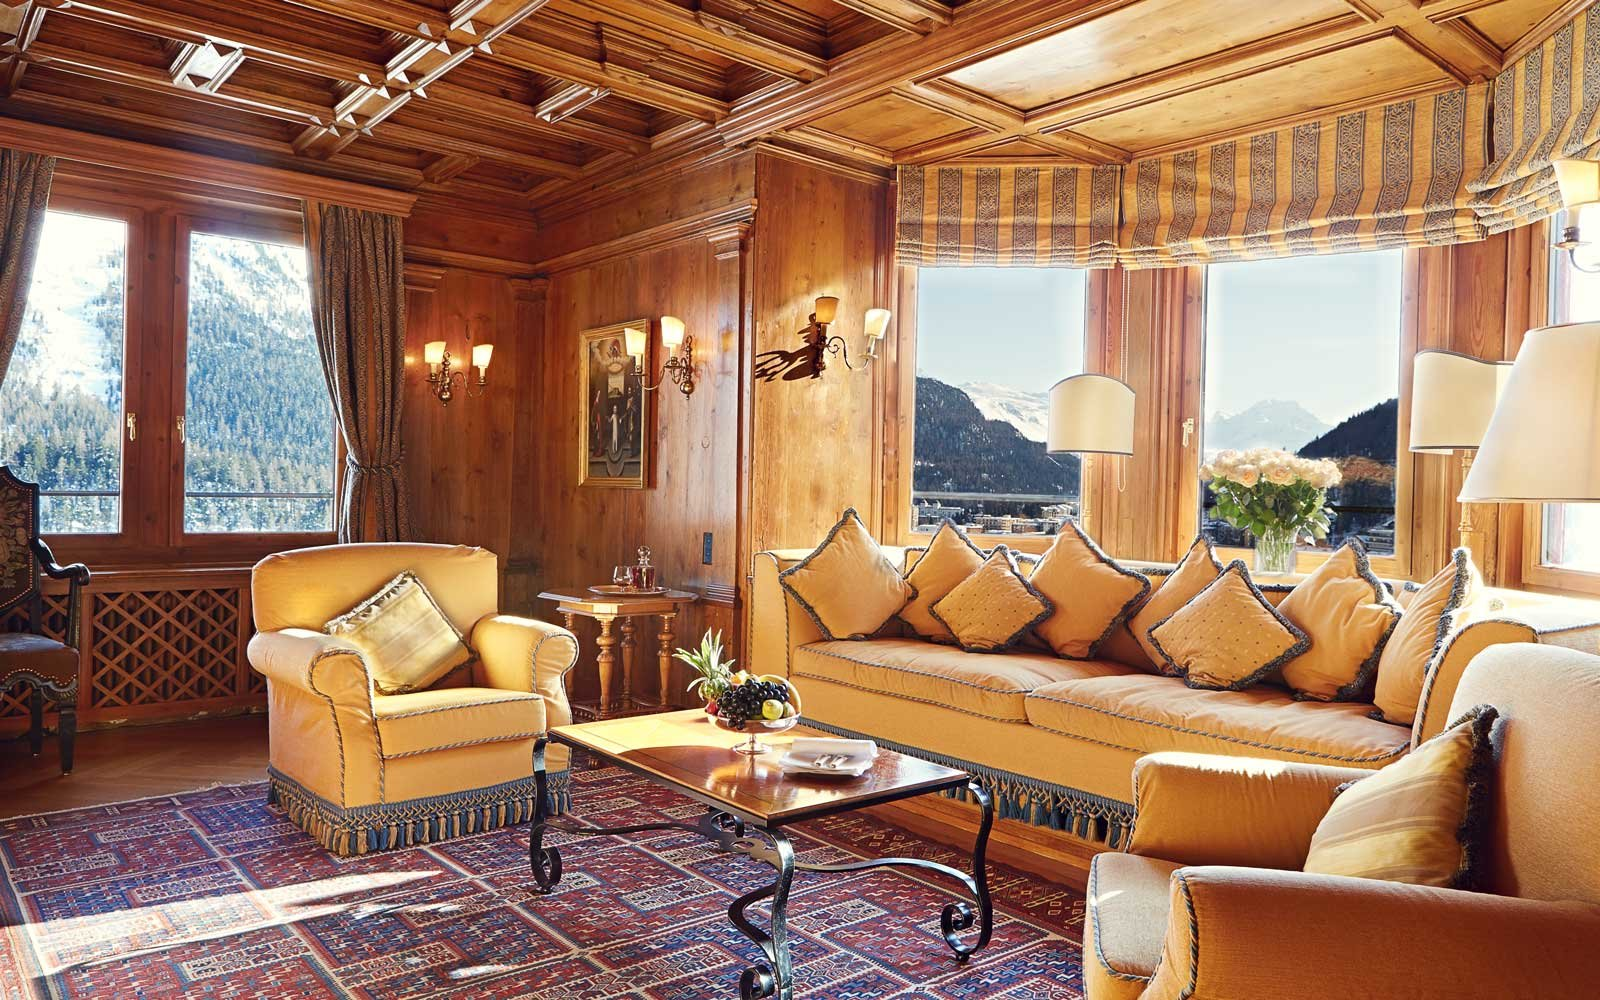 Top Romantic Hotels: Badrutt's Palace, Switzerland